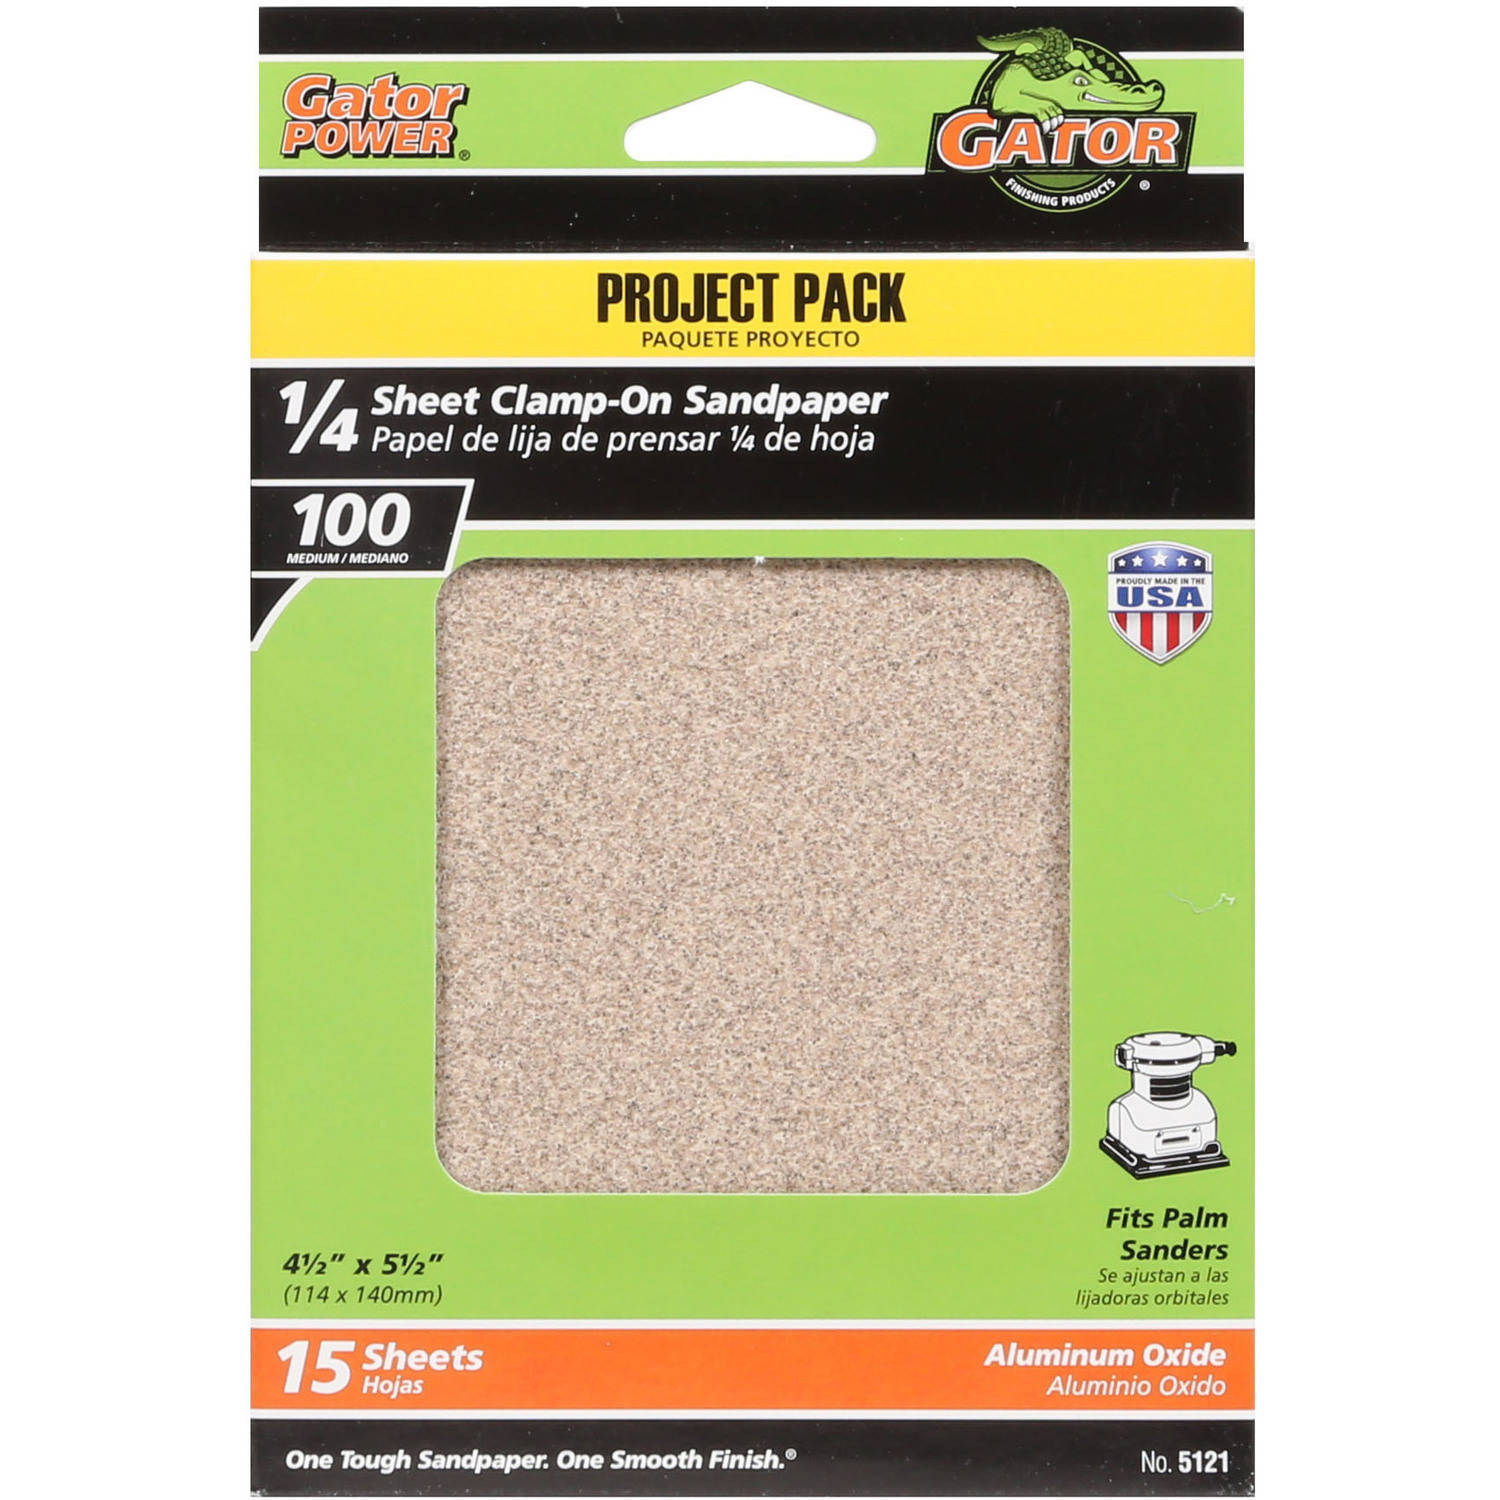 "Gator Grit 4.5"" x 5.5"" 1/4 Sheet Clamp-On Sandpaper, 100G, 15pk"